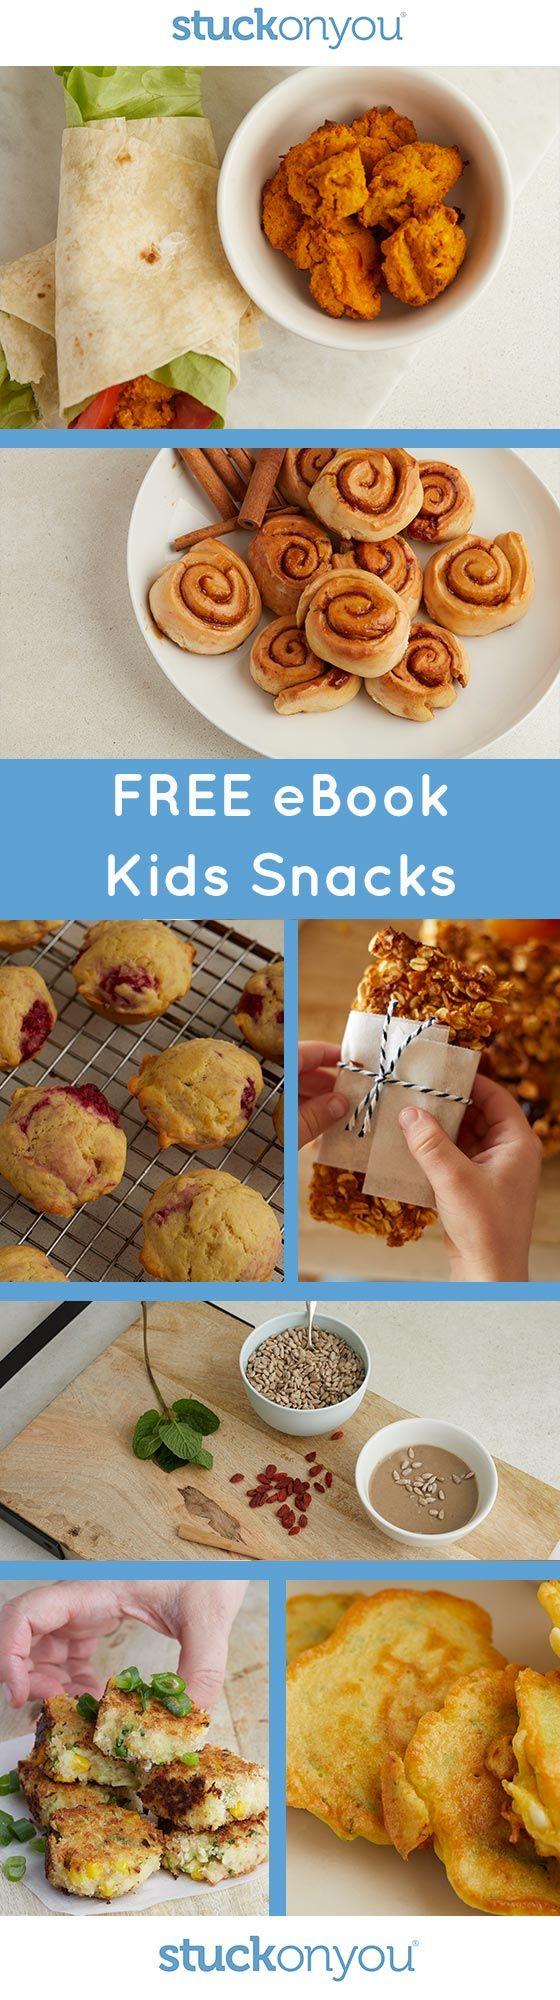 Get our FREE Kids Snacks eBook with sweet and savoury recipes that are perfect for kids lunchboxes or straight after school.  They tick all the boxes - easy, cheap, healthy, freezer-friendly and most importantly KID-FRIENDLY!